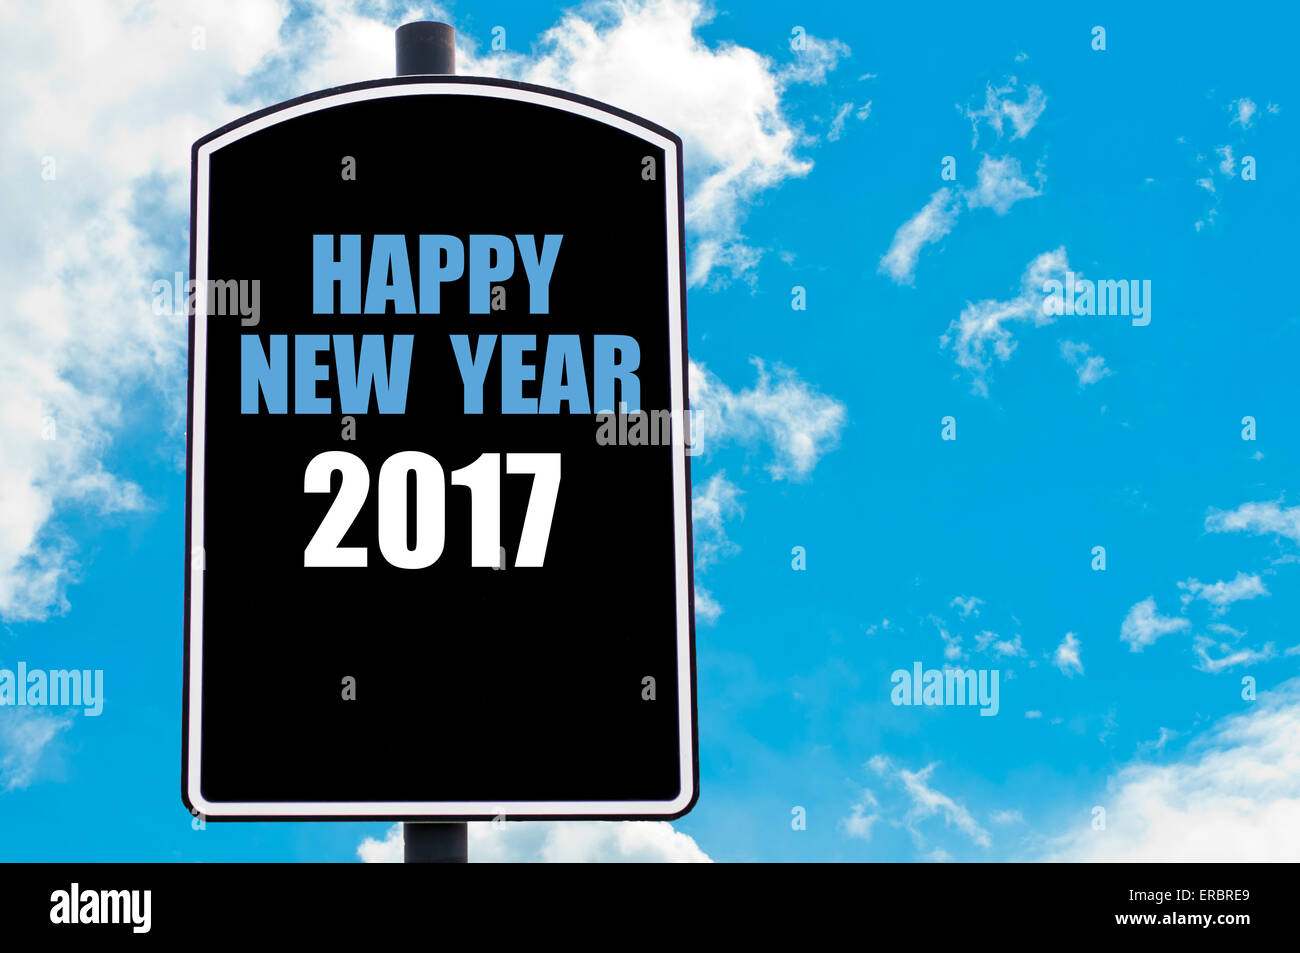 HAPPY NEW YEAR 2017 Motivational Quote Written On Road Sign Isolated Stock  Ph..